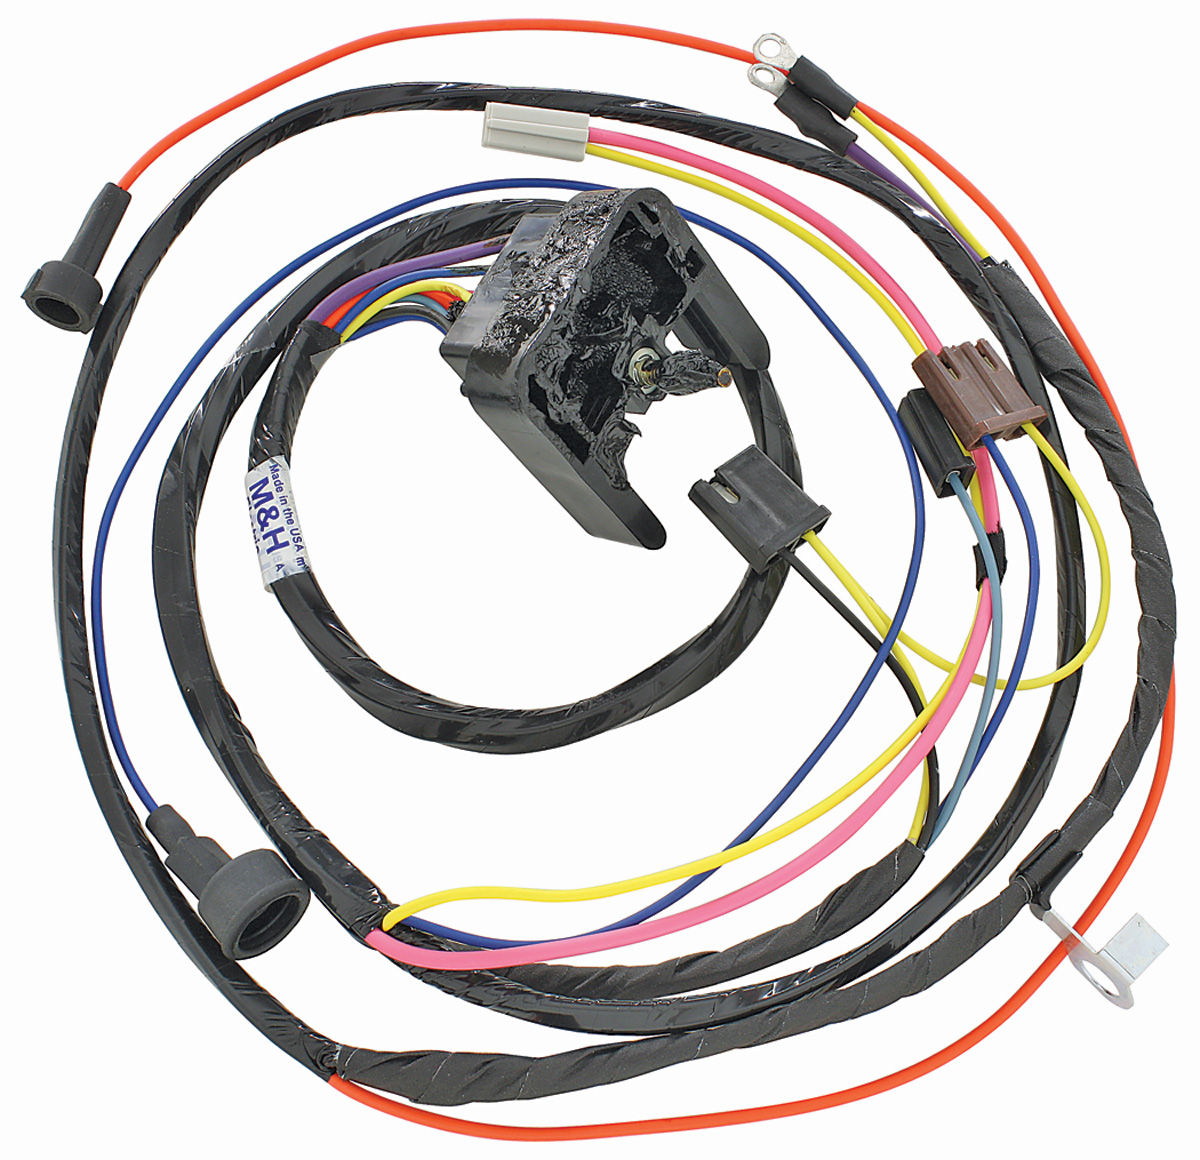 small resolution of 1970 chevelle engine wiring harness likewise 1970 1970 chevelle engine schema wiring diagram